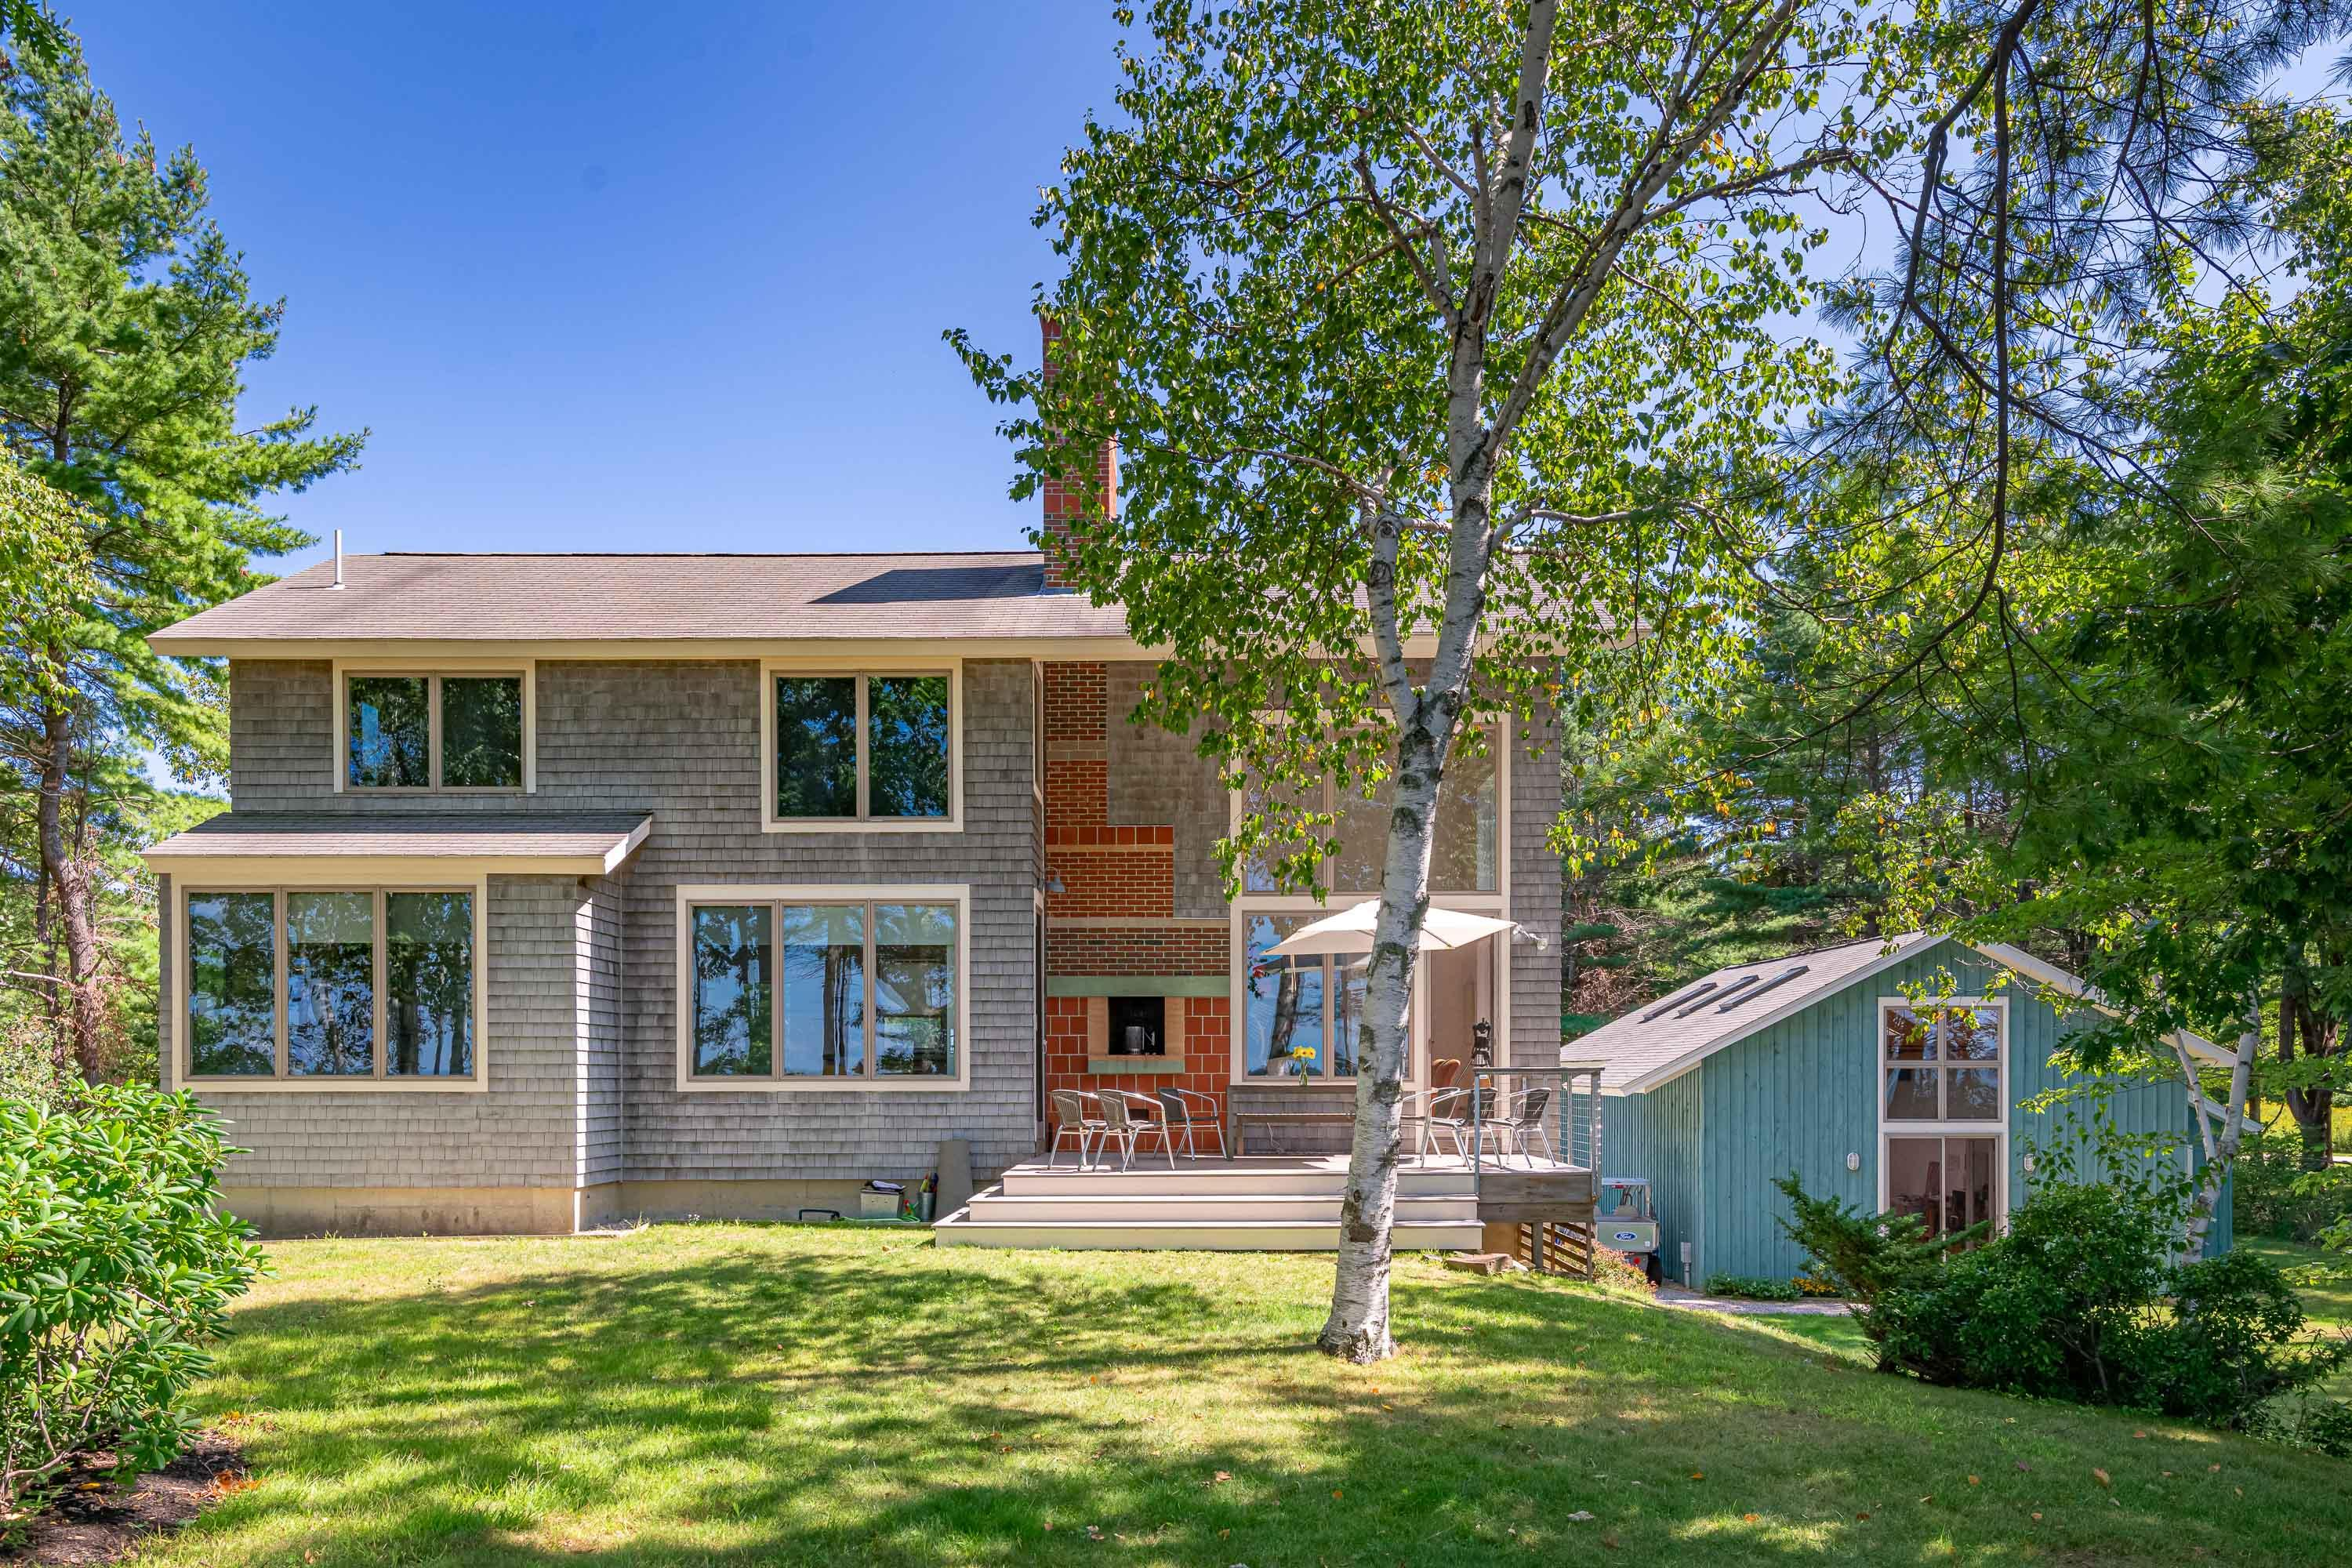 Main image for MLS listing 1468447